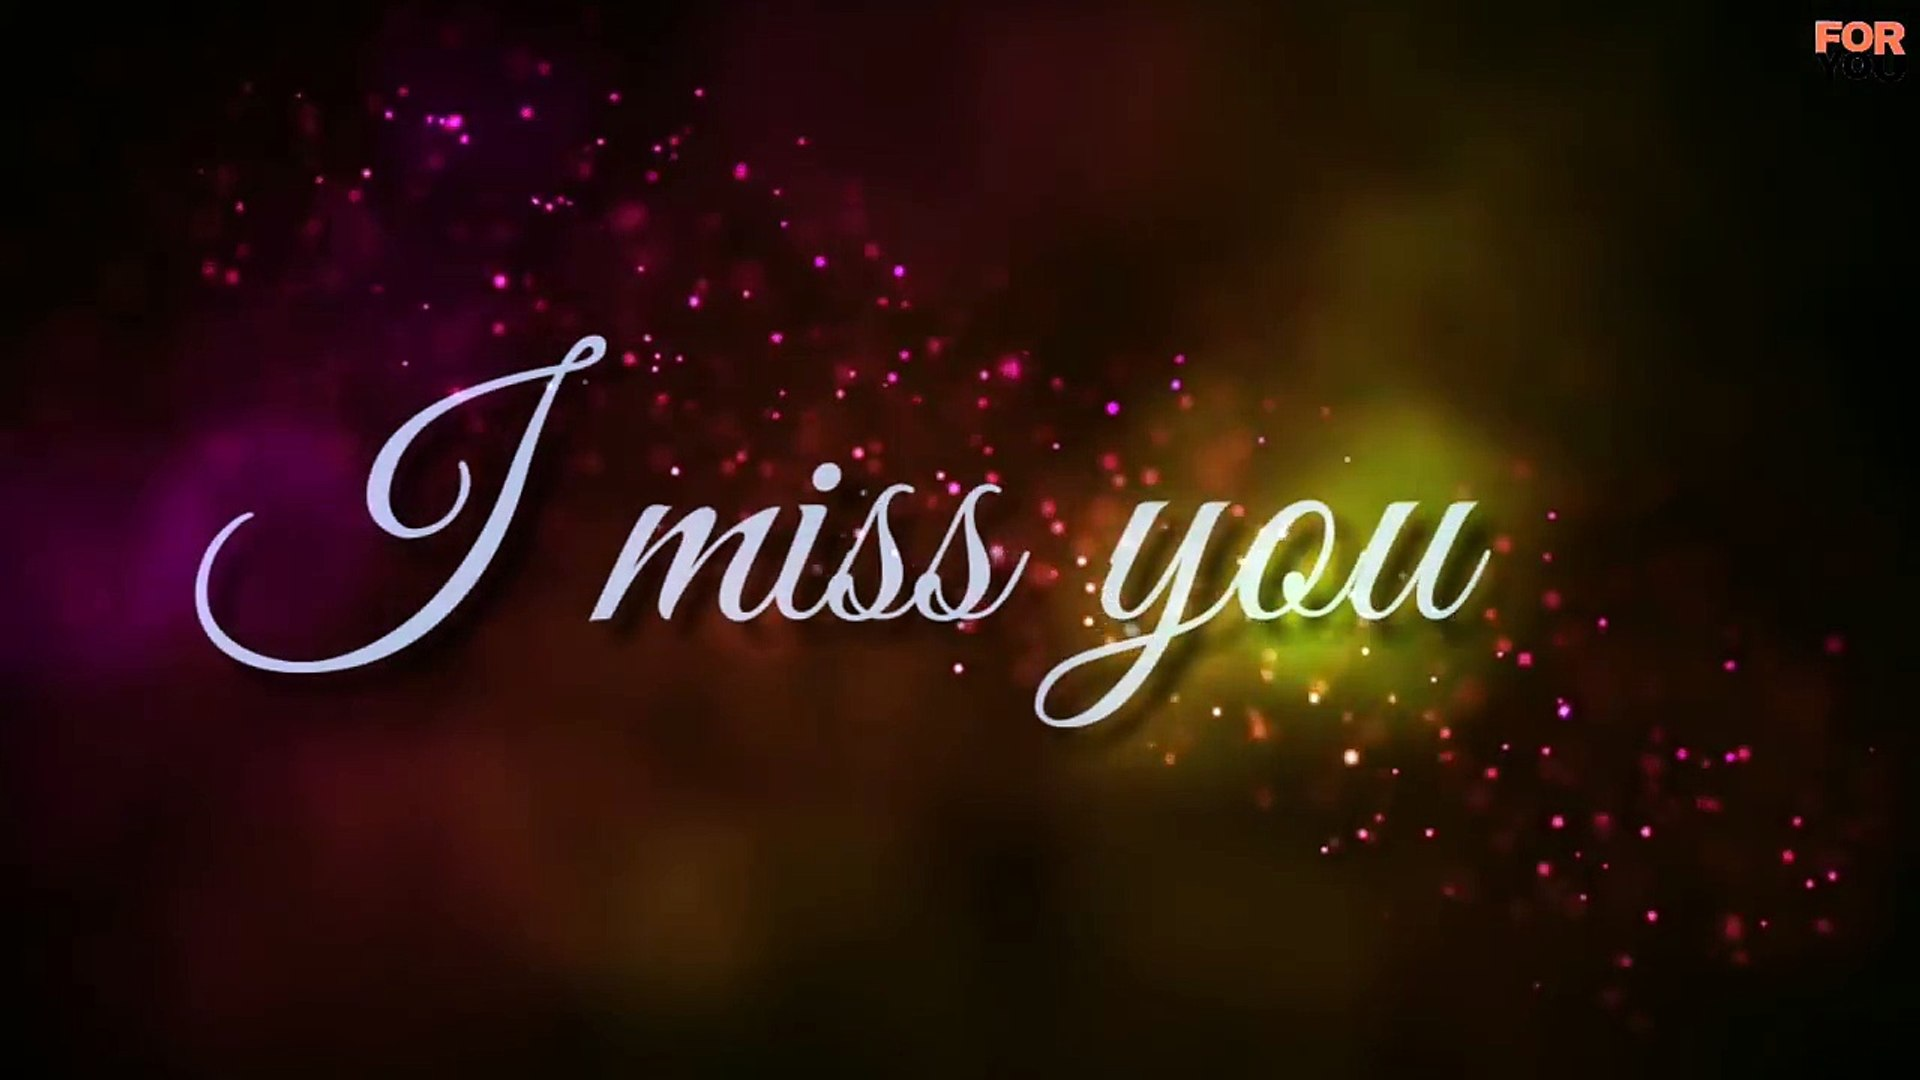 I Miss You Very Heart Touching Sad Whatsapp Status Lyrics Video For You